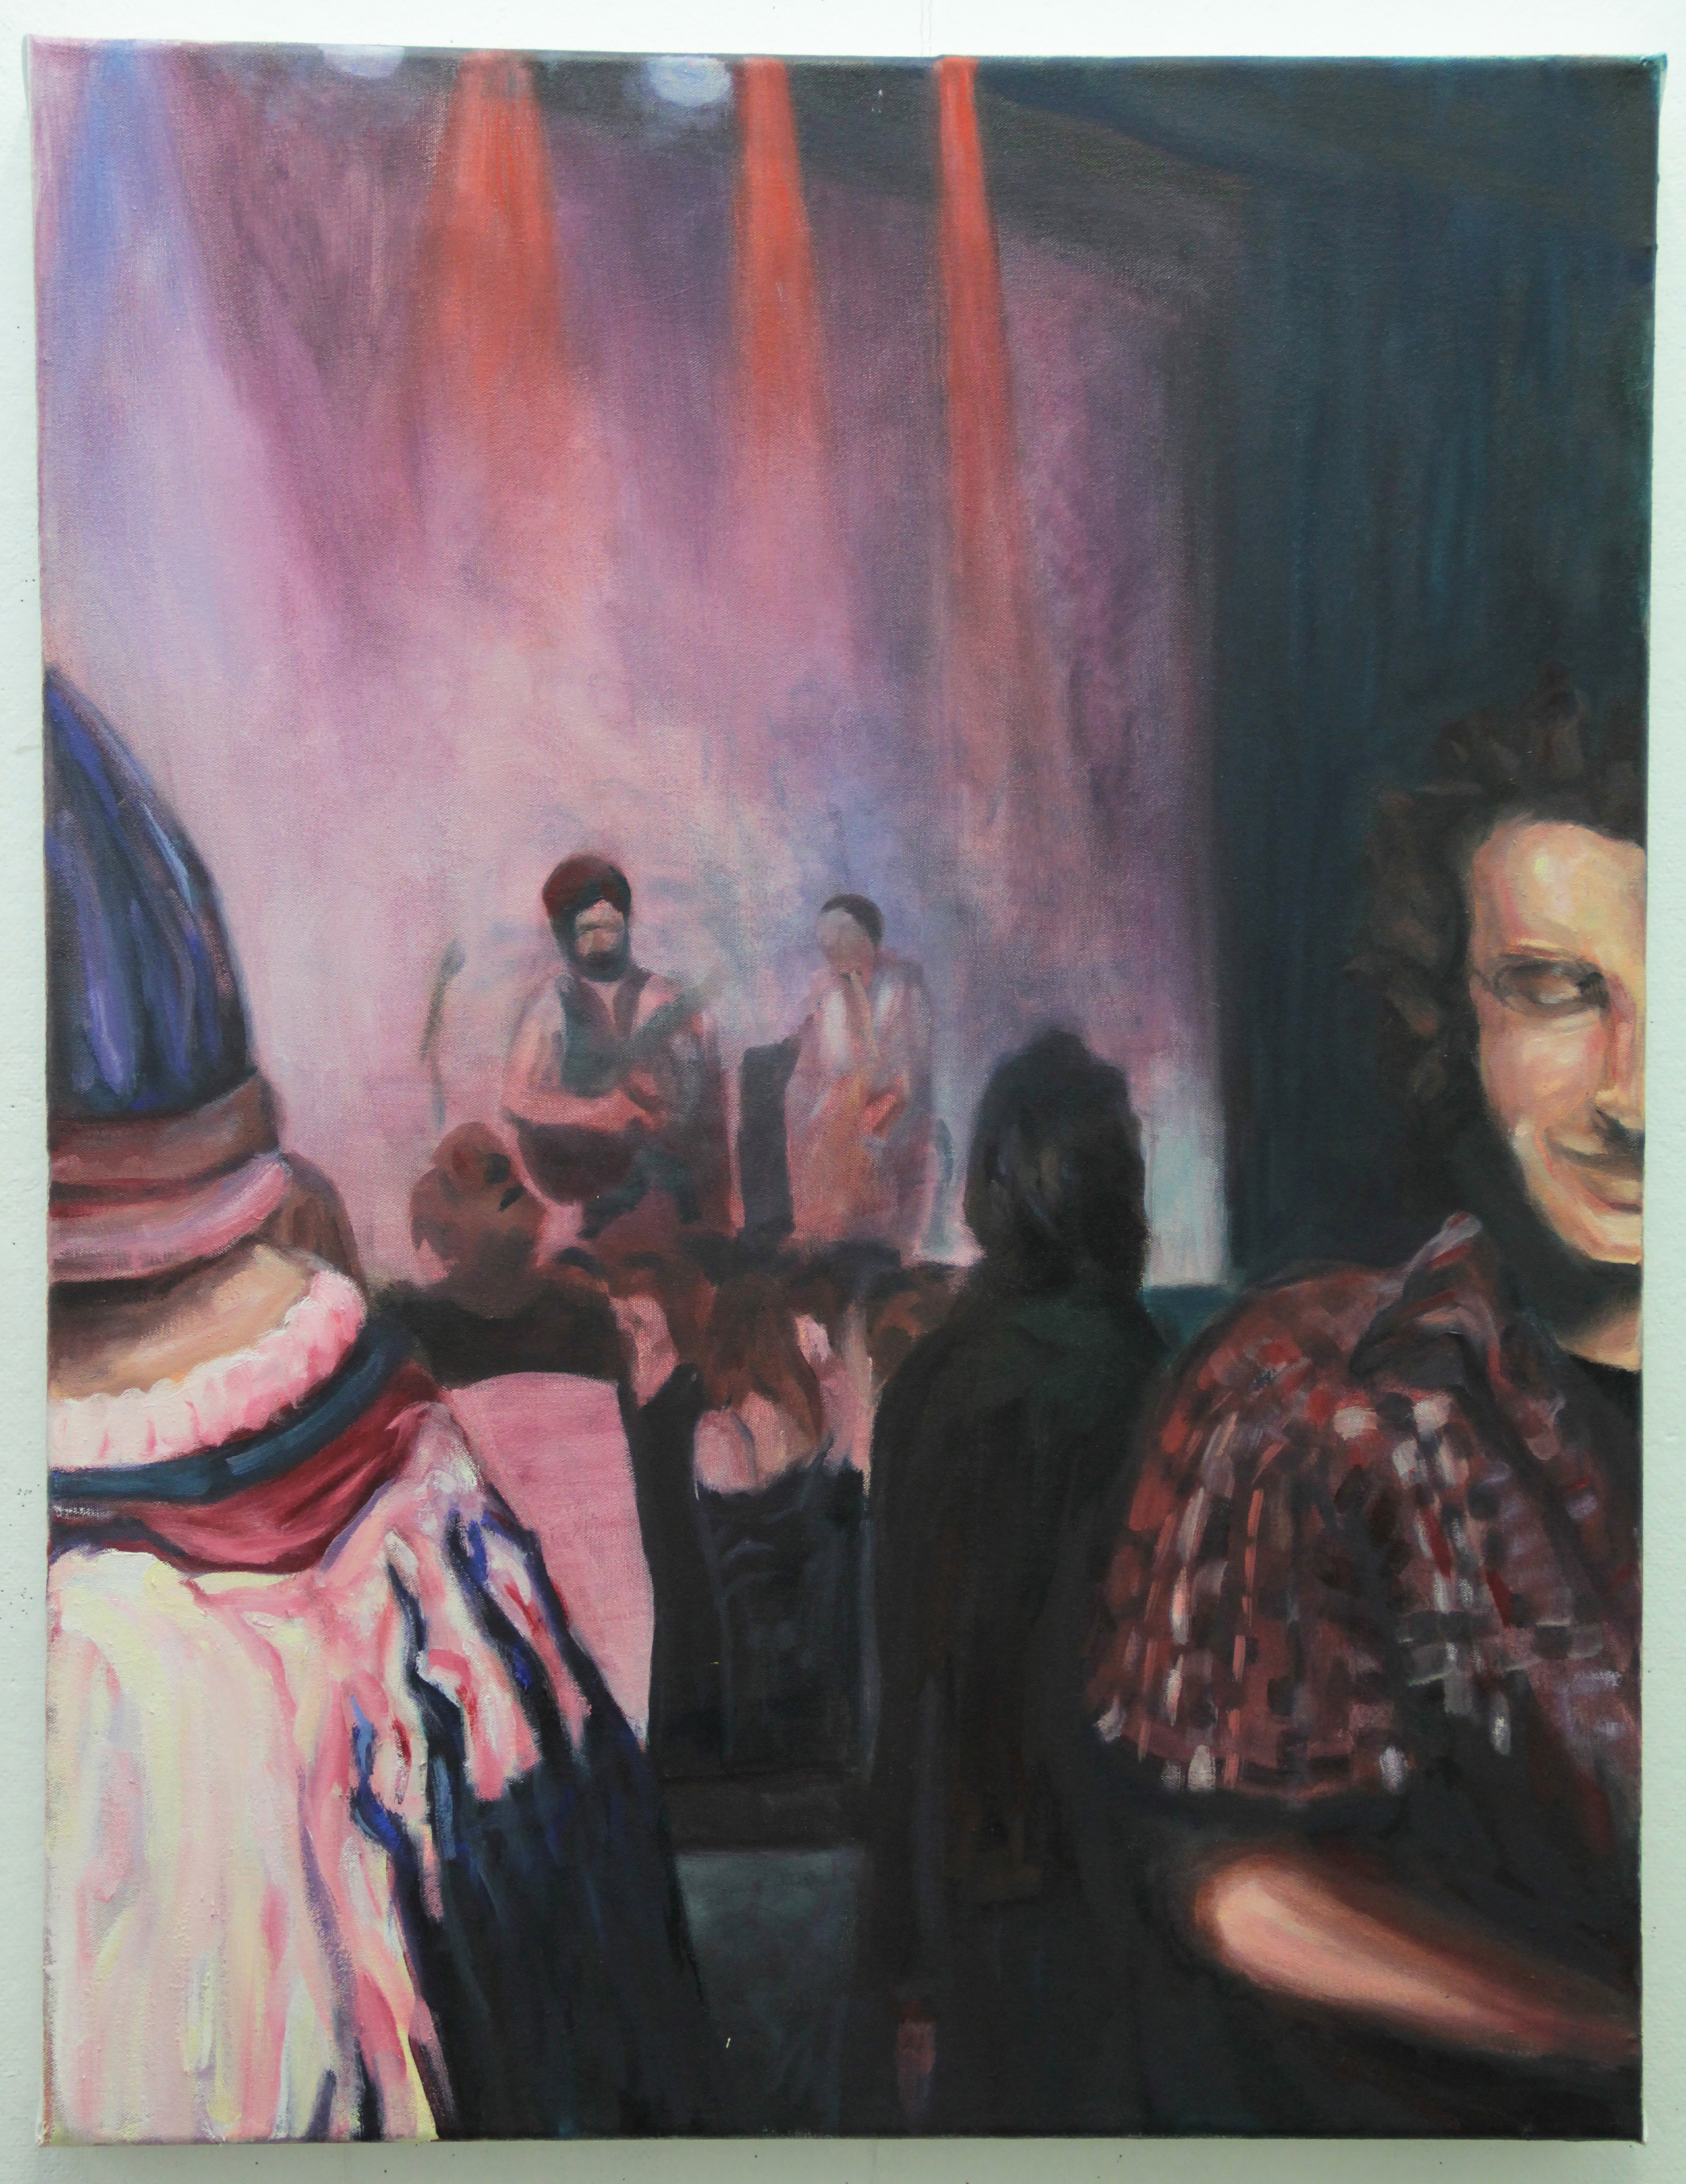 Smoke Rise Slings , 2011, Oil on Linen, 40 inches (101.6 cm) x 30 inches (76.2 cm)